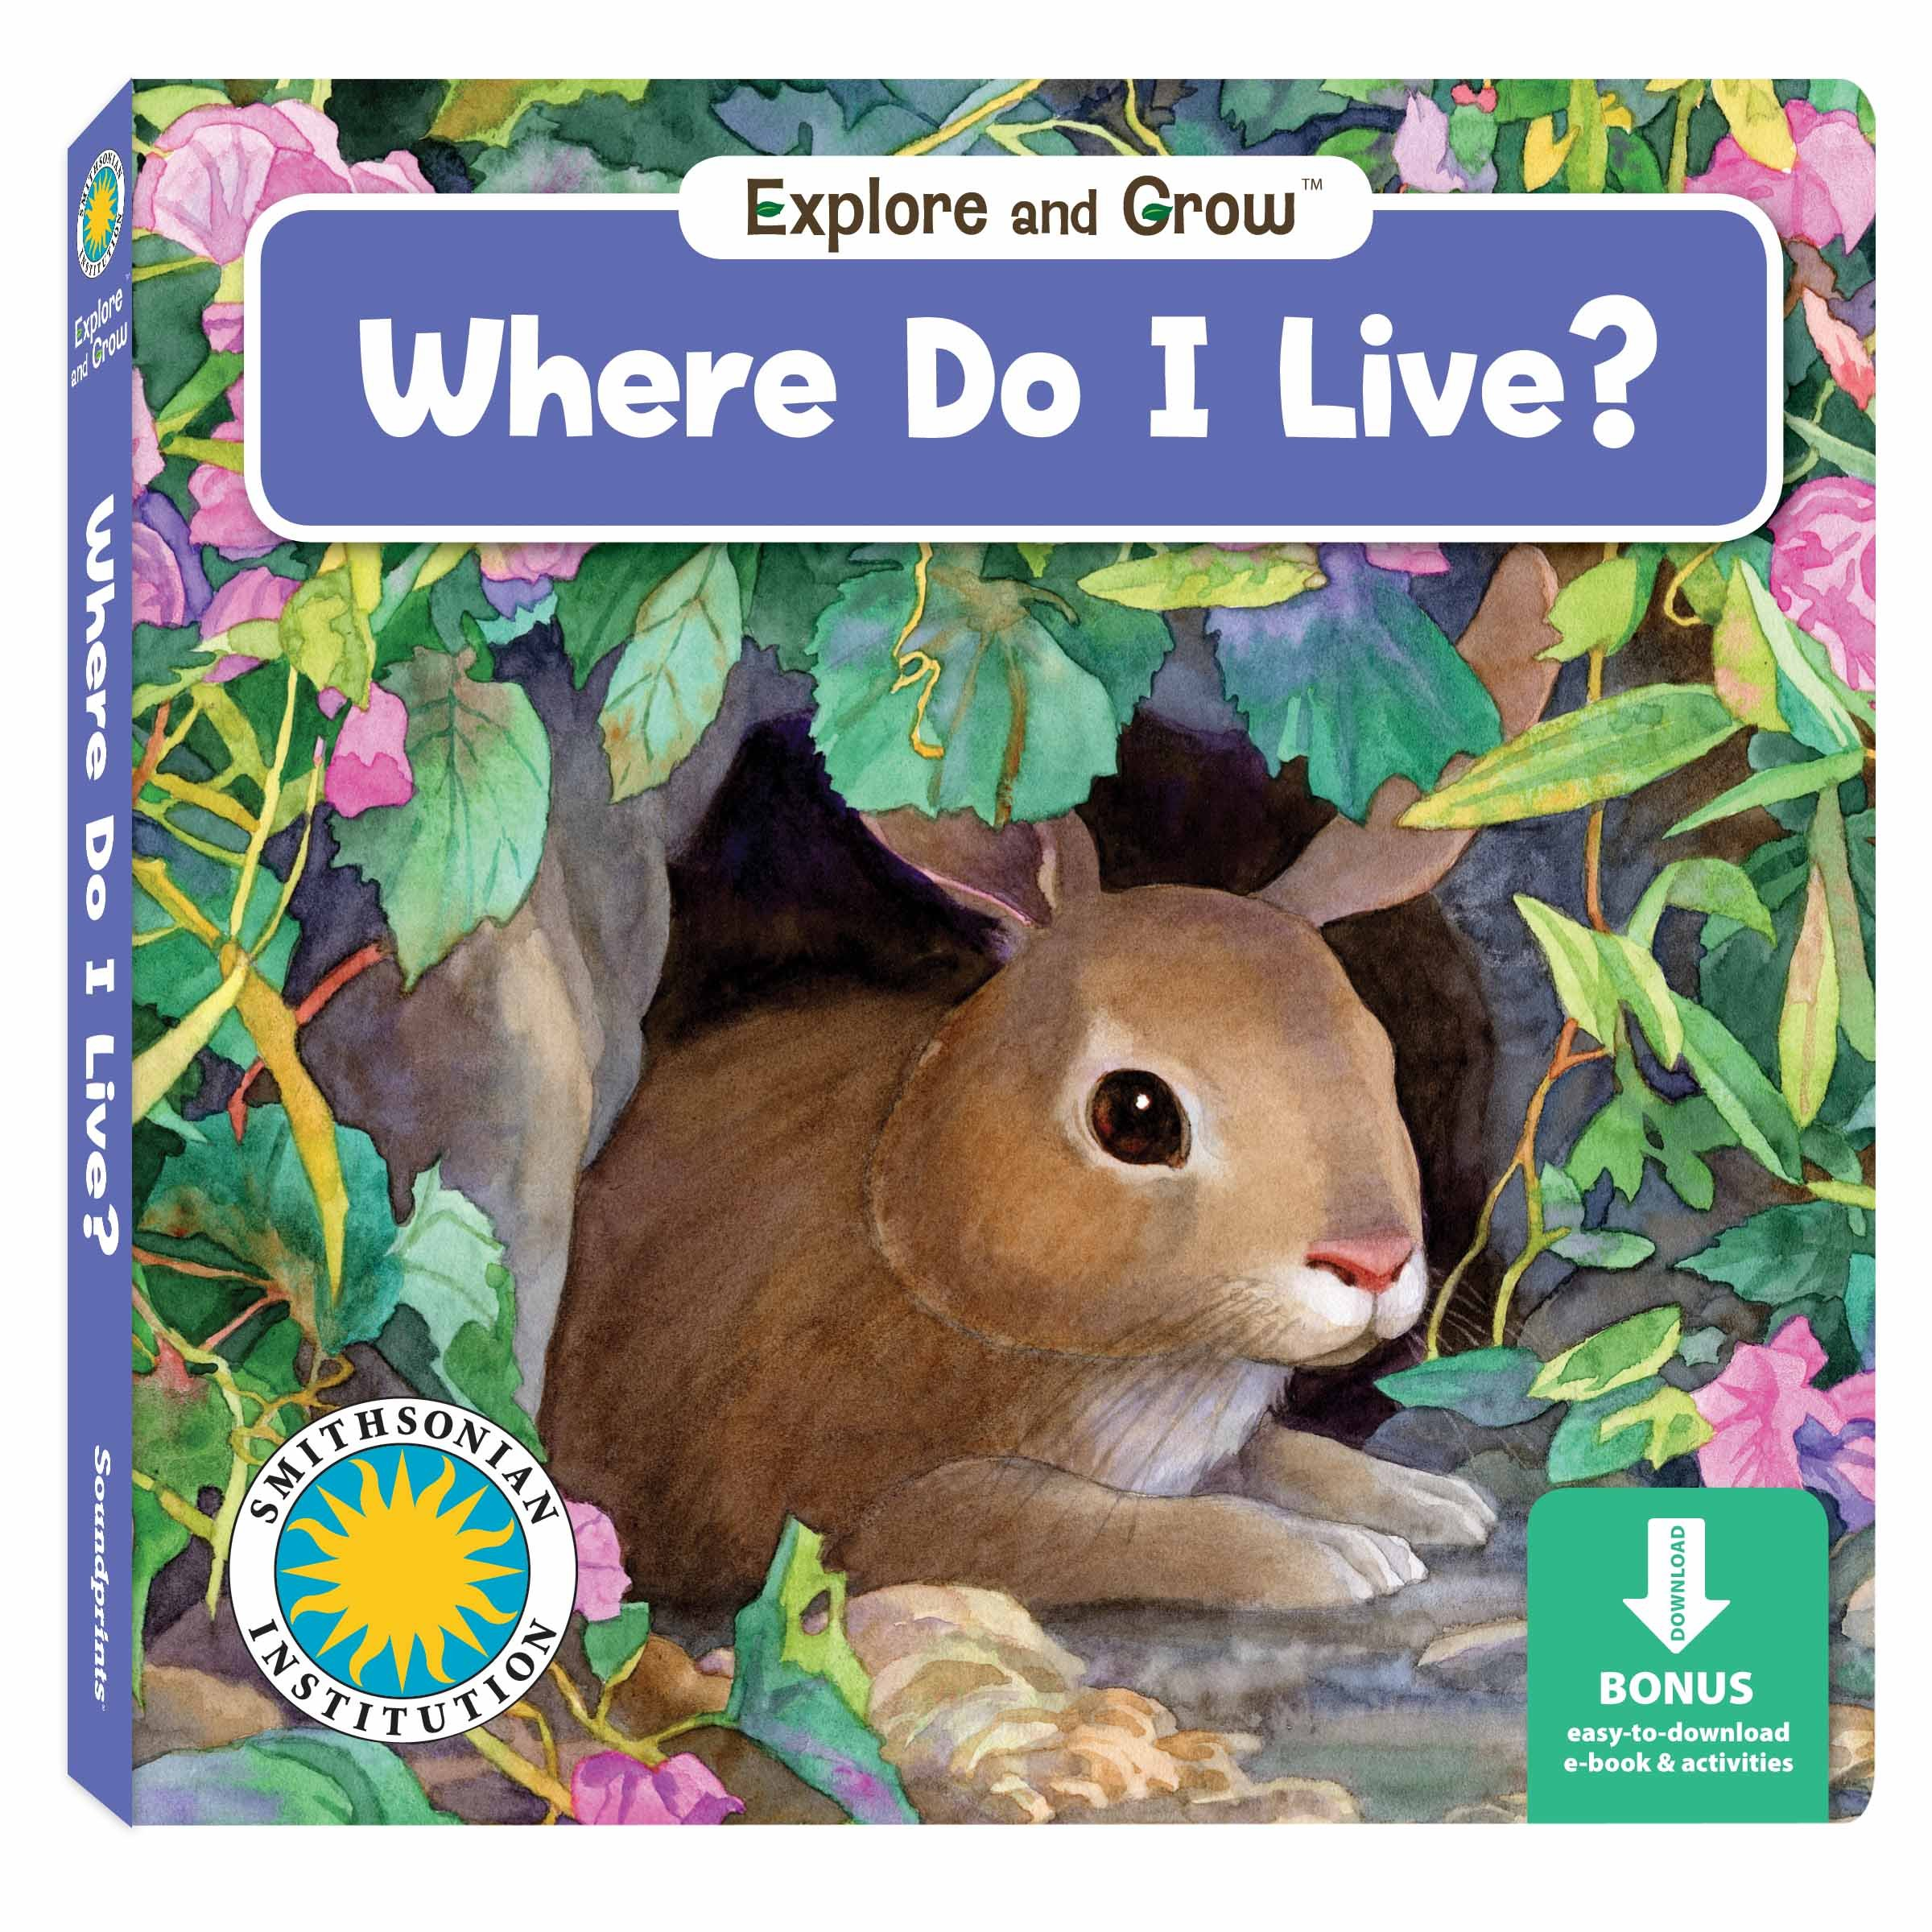 Where Do I Live A Smithsonian Explore And Grow Book With Easy To Download E Book And Printable Activities Laura Gates Galvin 9781607271567 Amazon Com Books You could also use this as a springboard to teach kindergartners about the 7 continents using our free continent book. amazon com